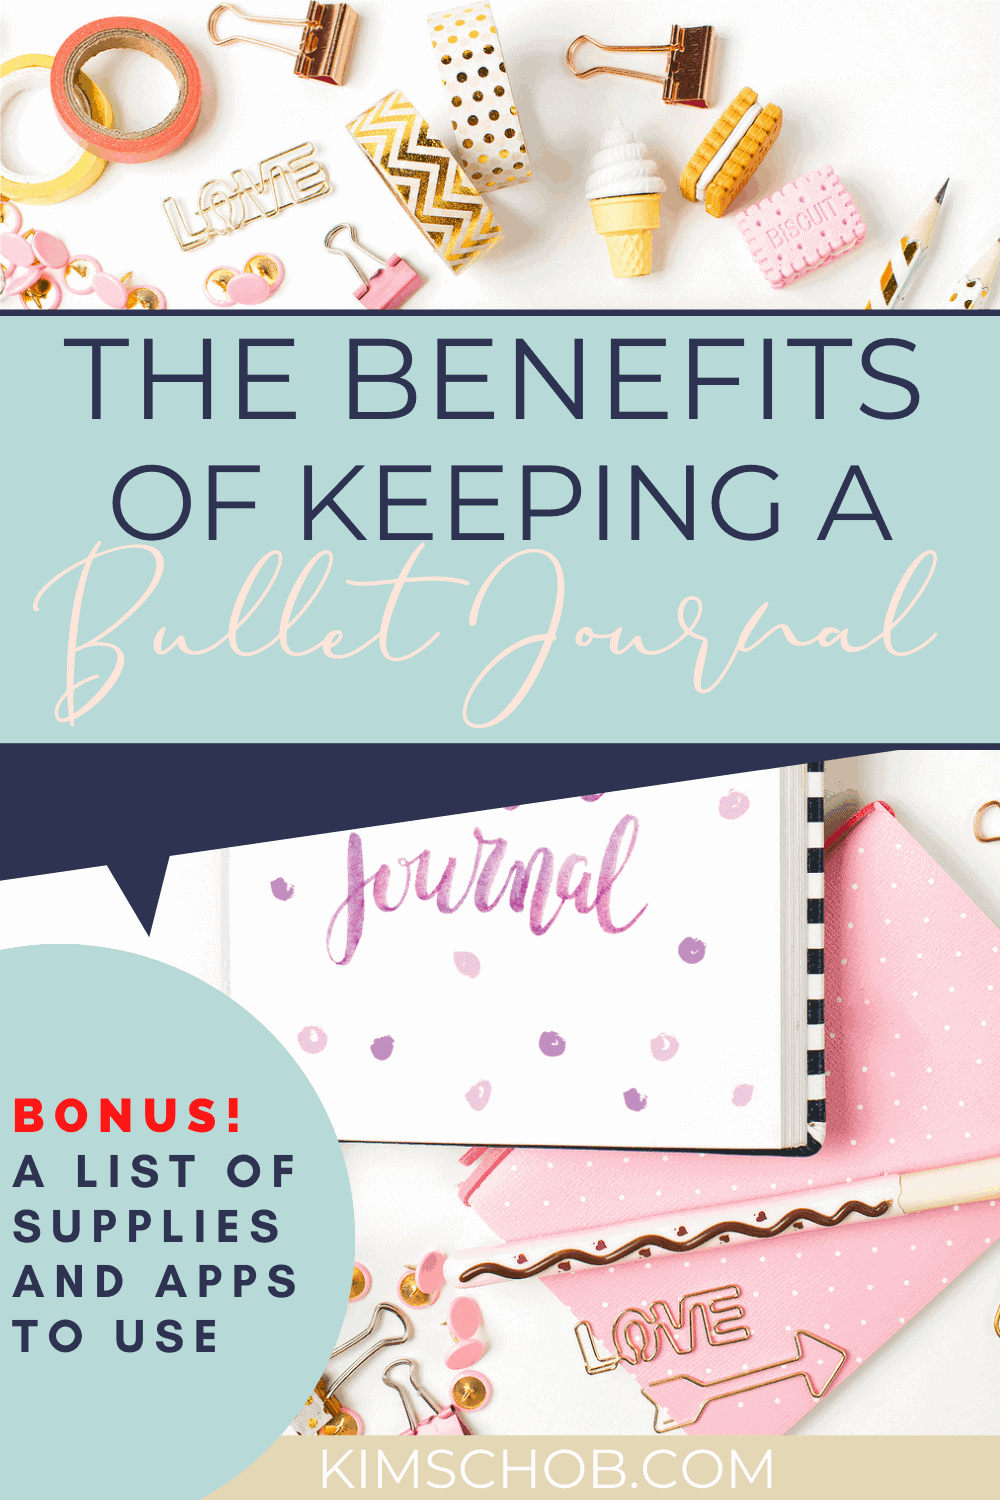 The Benefits of Keeping a Bullet Journal | kimschob.com